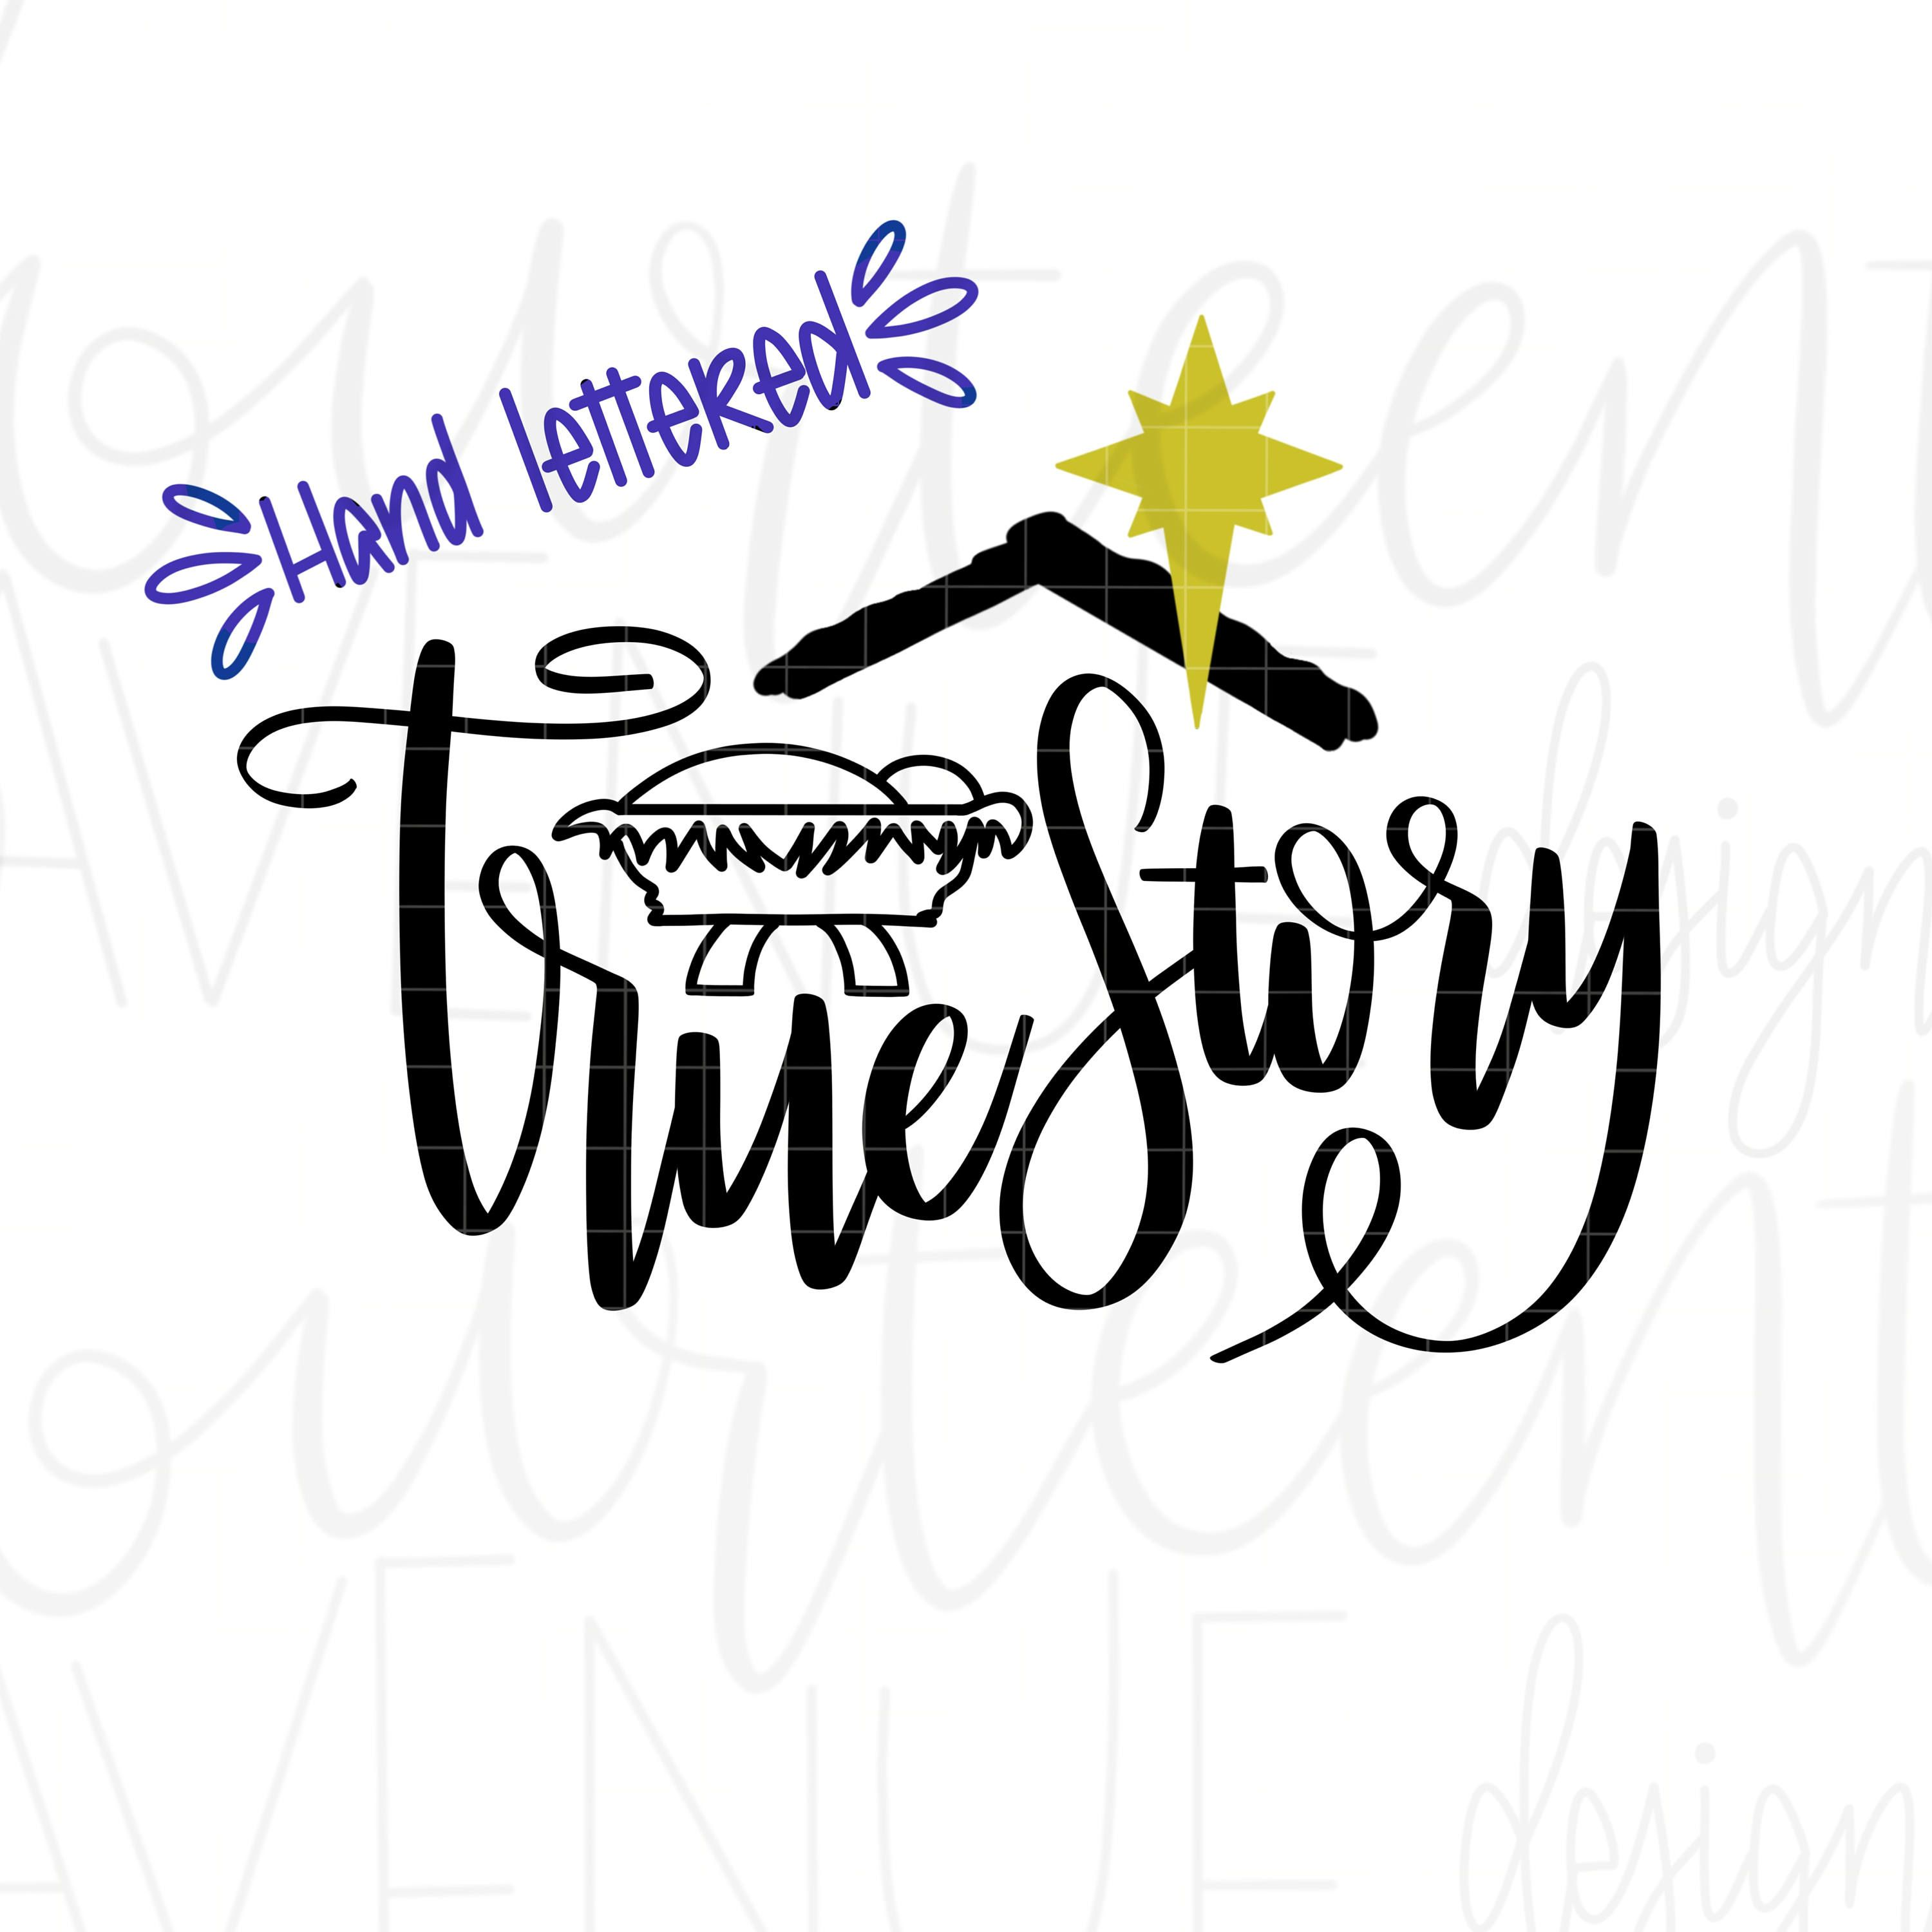 True Story SVG with Nativity and Baby Jesus Details, Hand